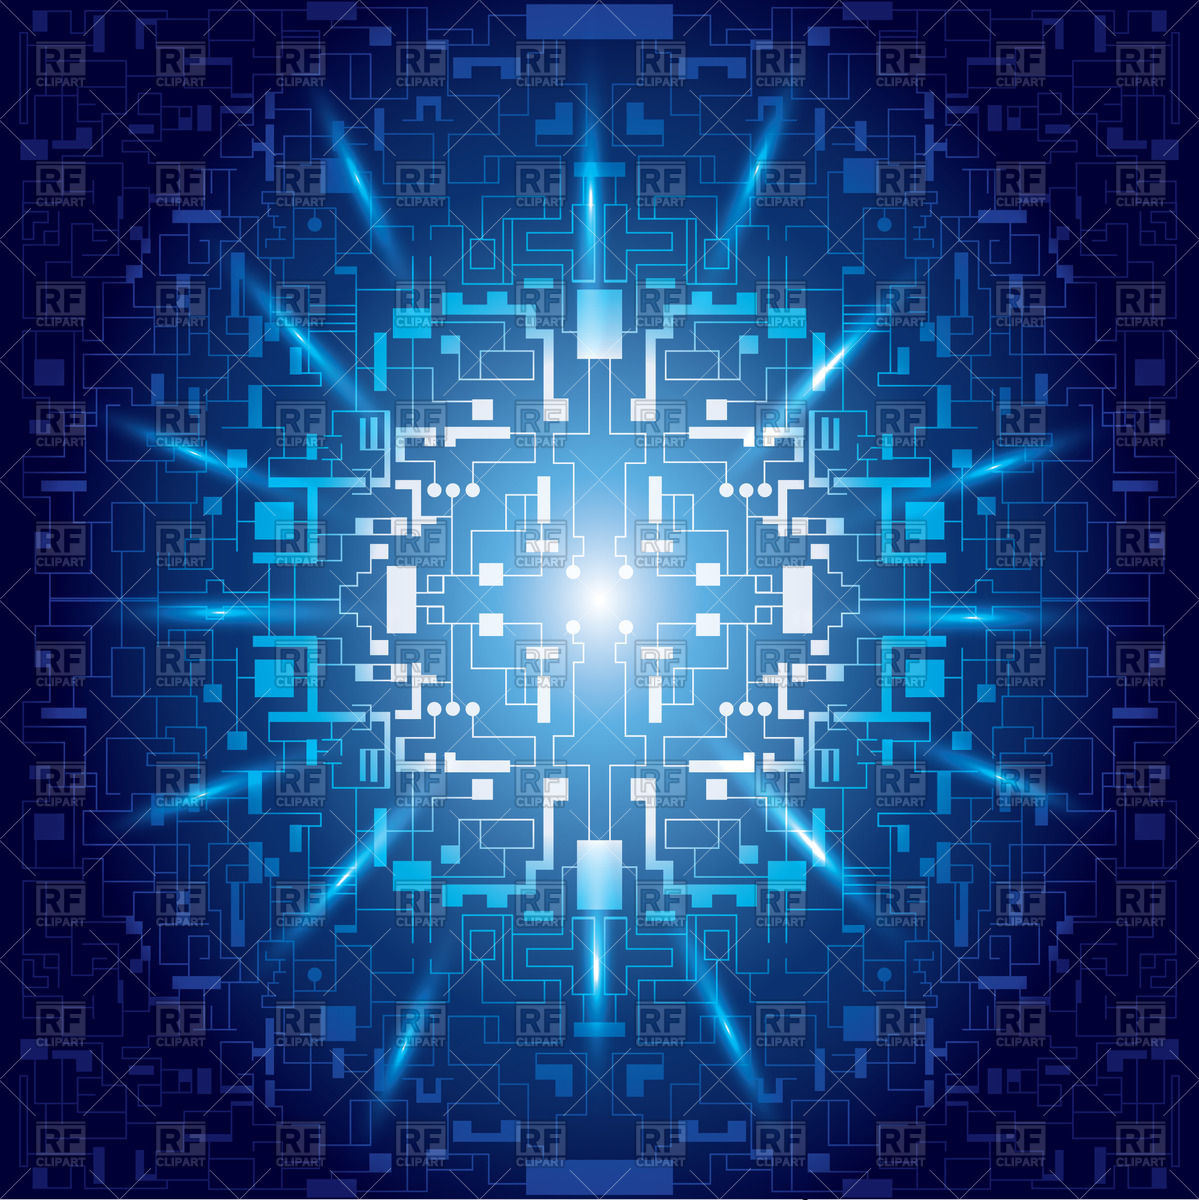 Abstract blue background with symbolic digital matrix Vector Image.